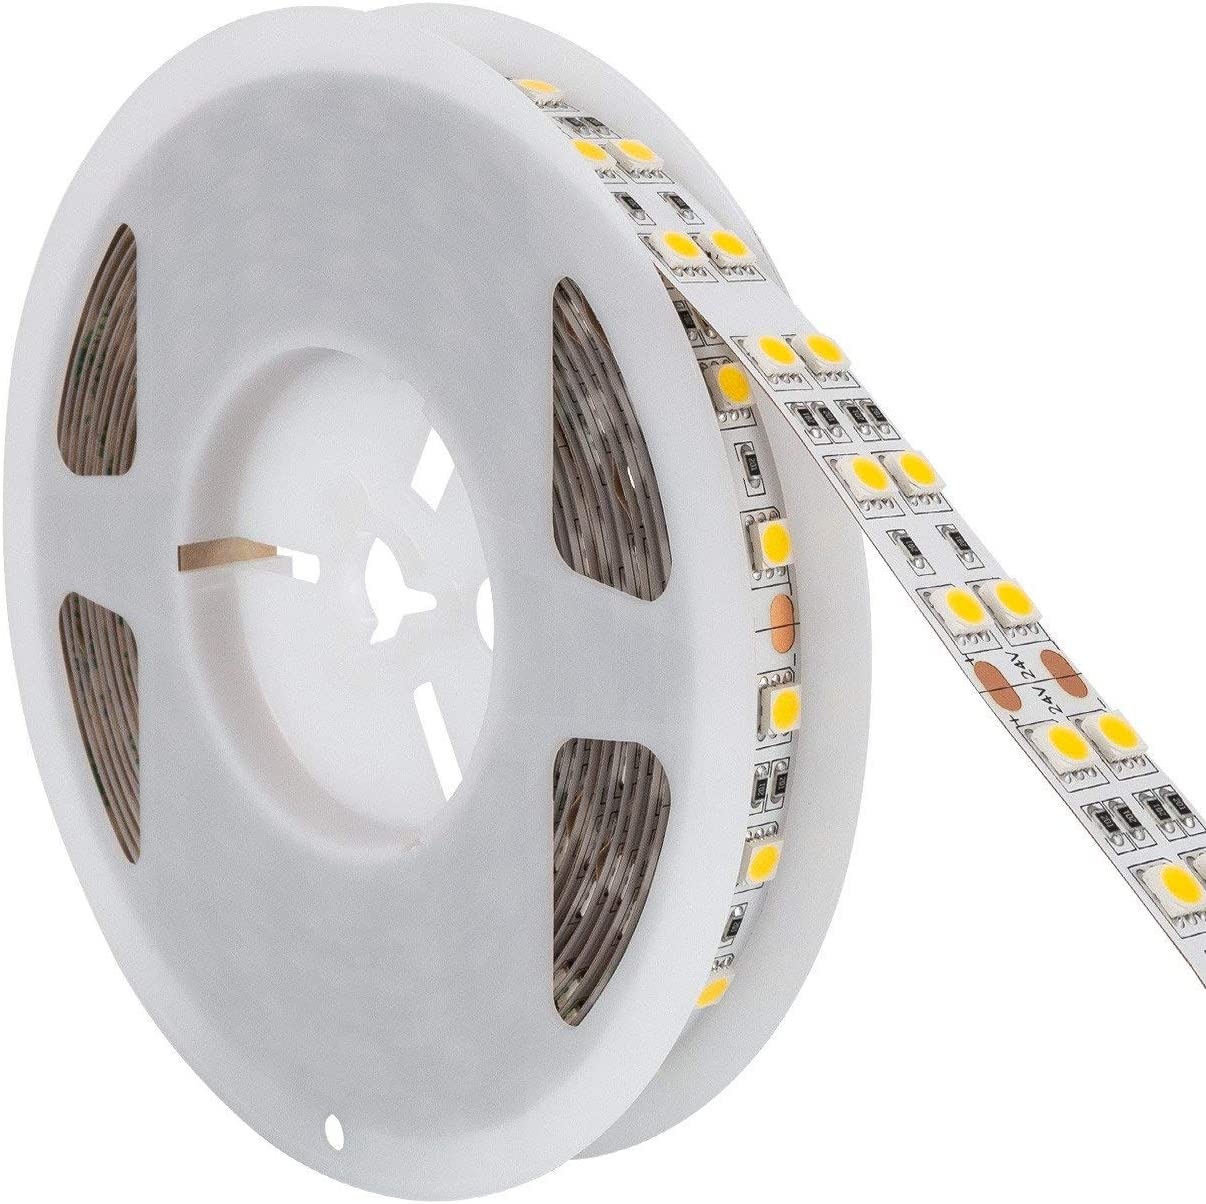 LEDKIA LIGHTING Tira LED 24V DC 120LED/m 5m IP20 Blanco Neutro 4000K - 4500K